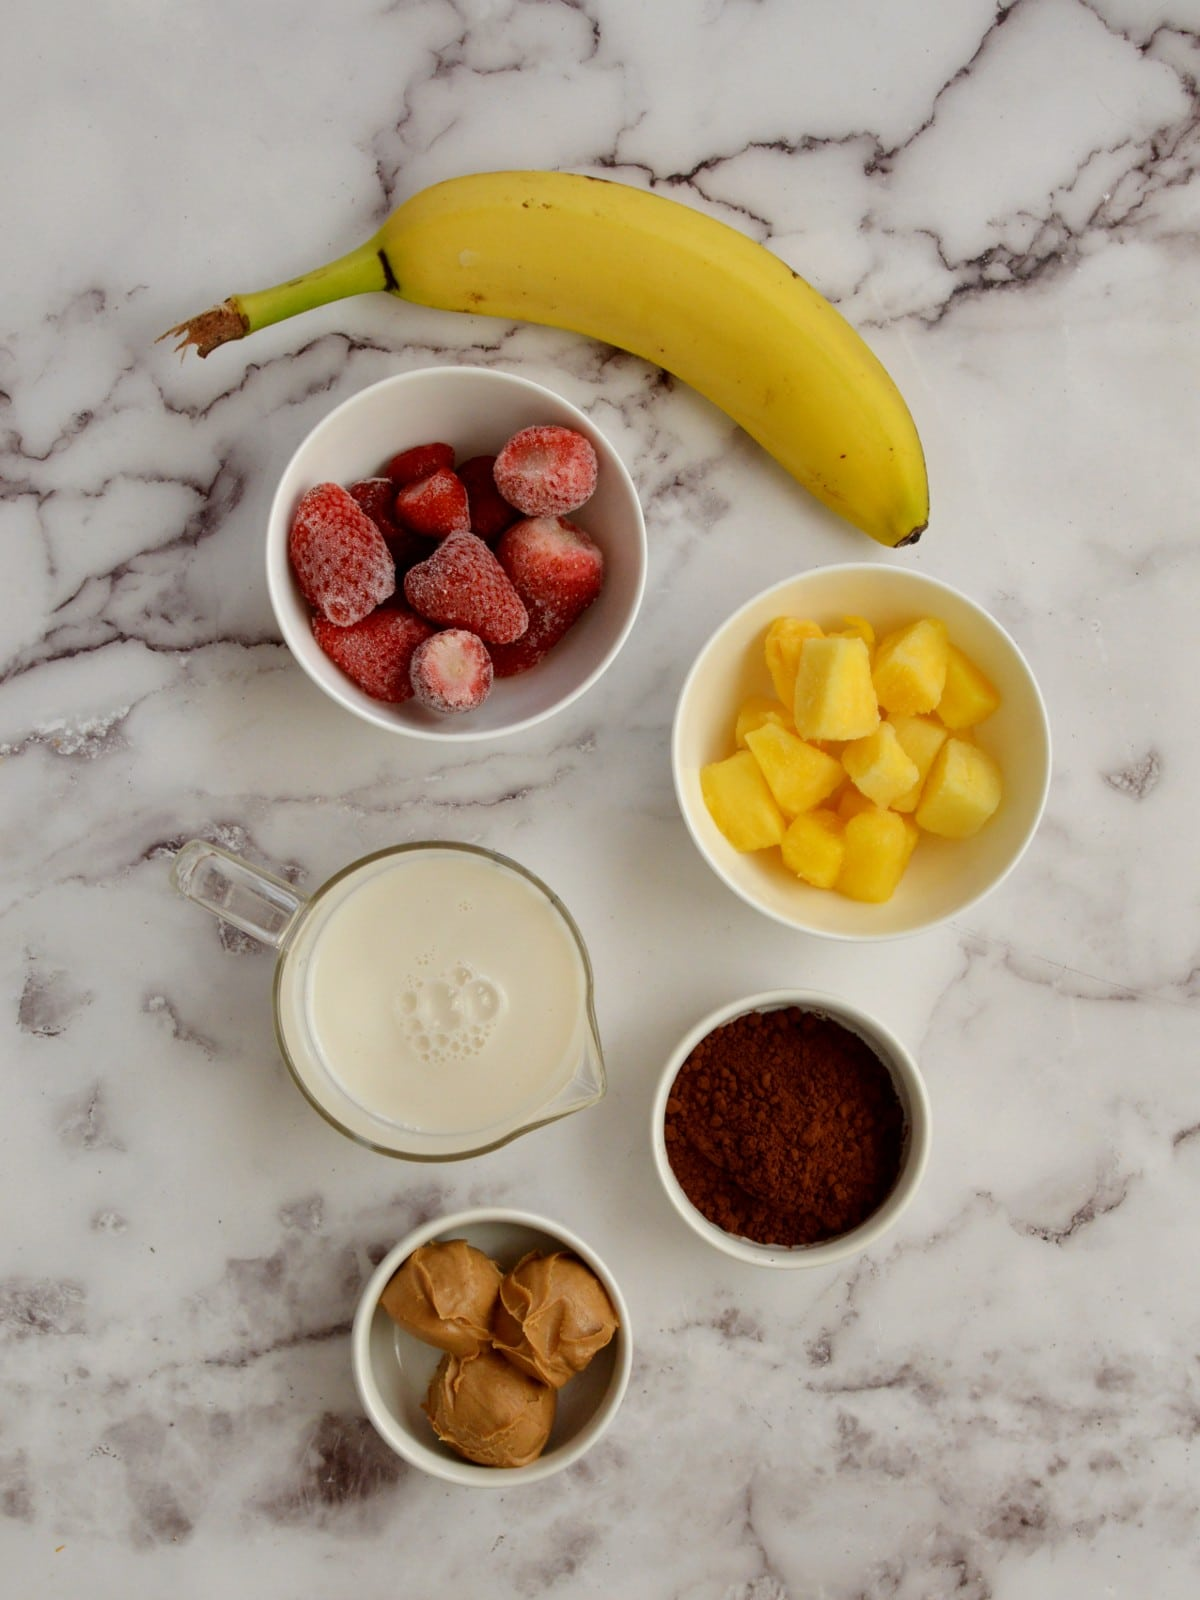 ingredients for a chocolate pineapple smoothie